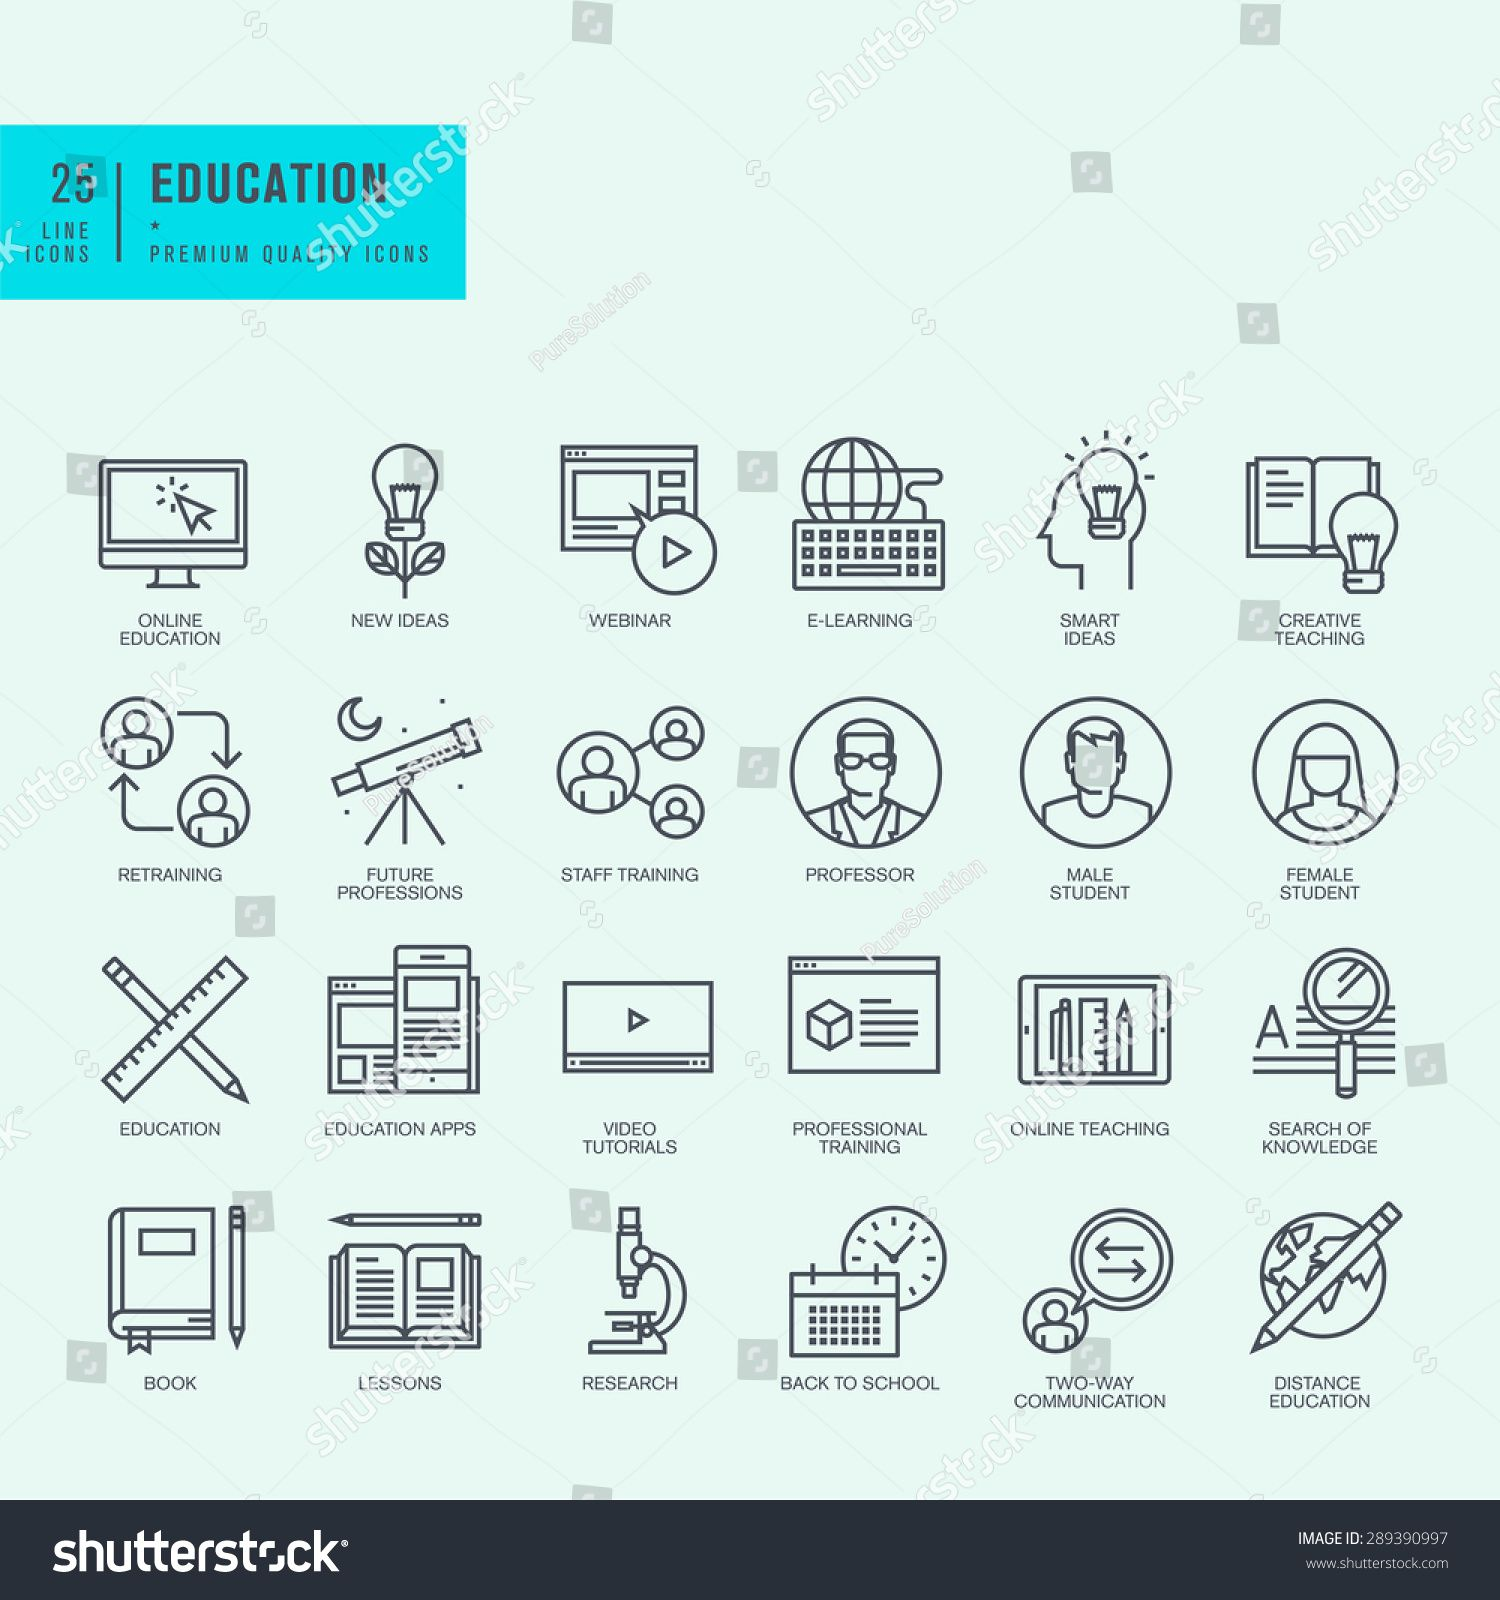 Business Education Vector Linear Icon Isolated On Transparent